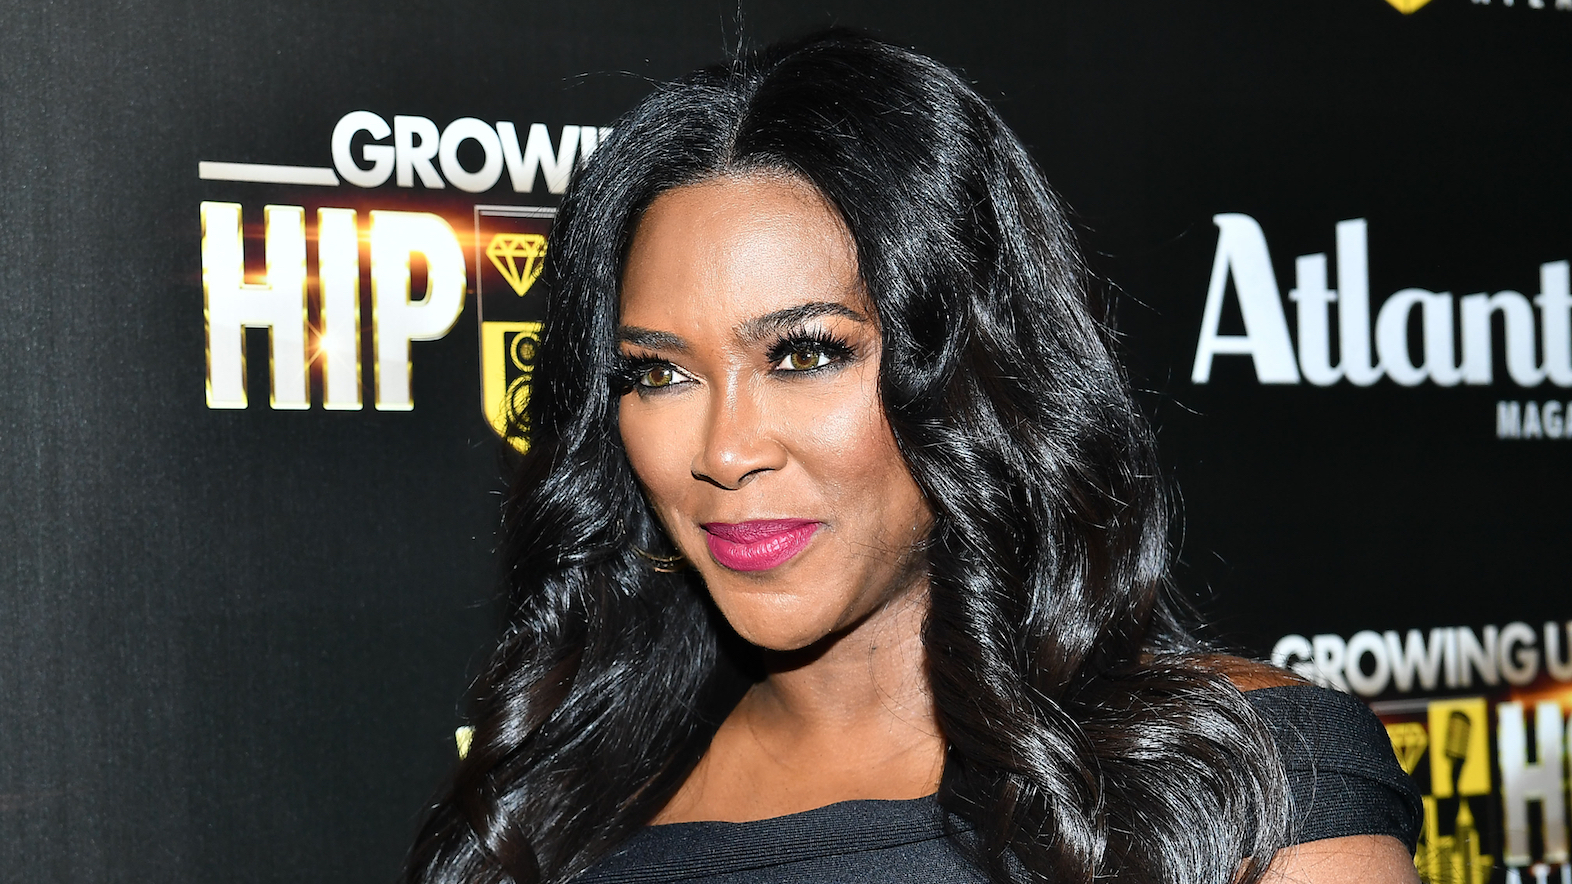 Kenya Moore Shares A Jaw-Dropping Photo On Her Social Media Account And Fans Are Going Crazy In The Comments